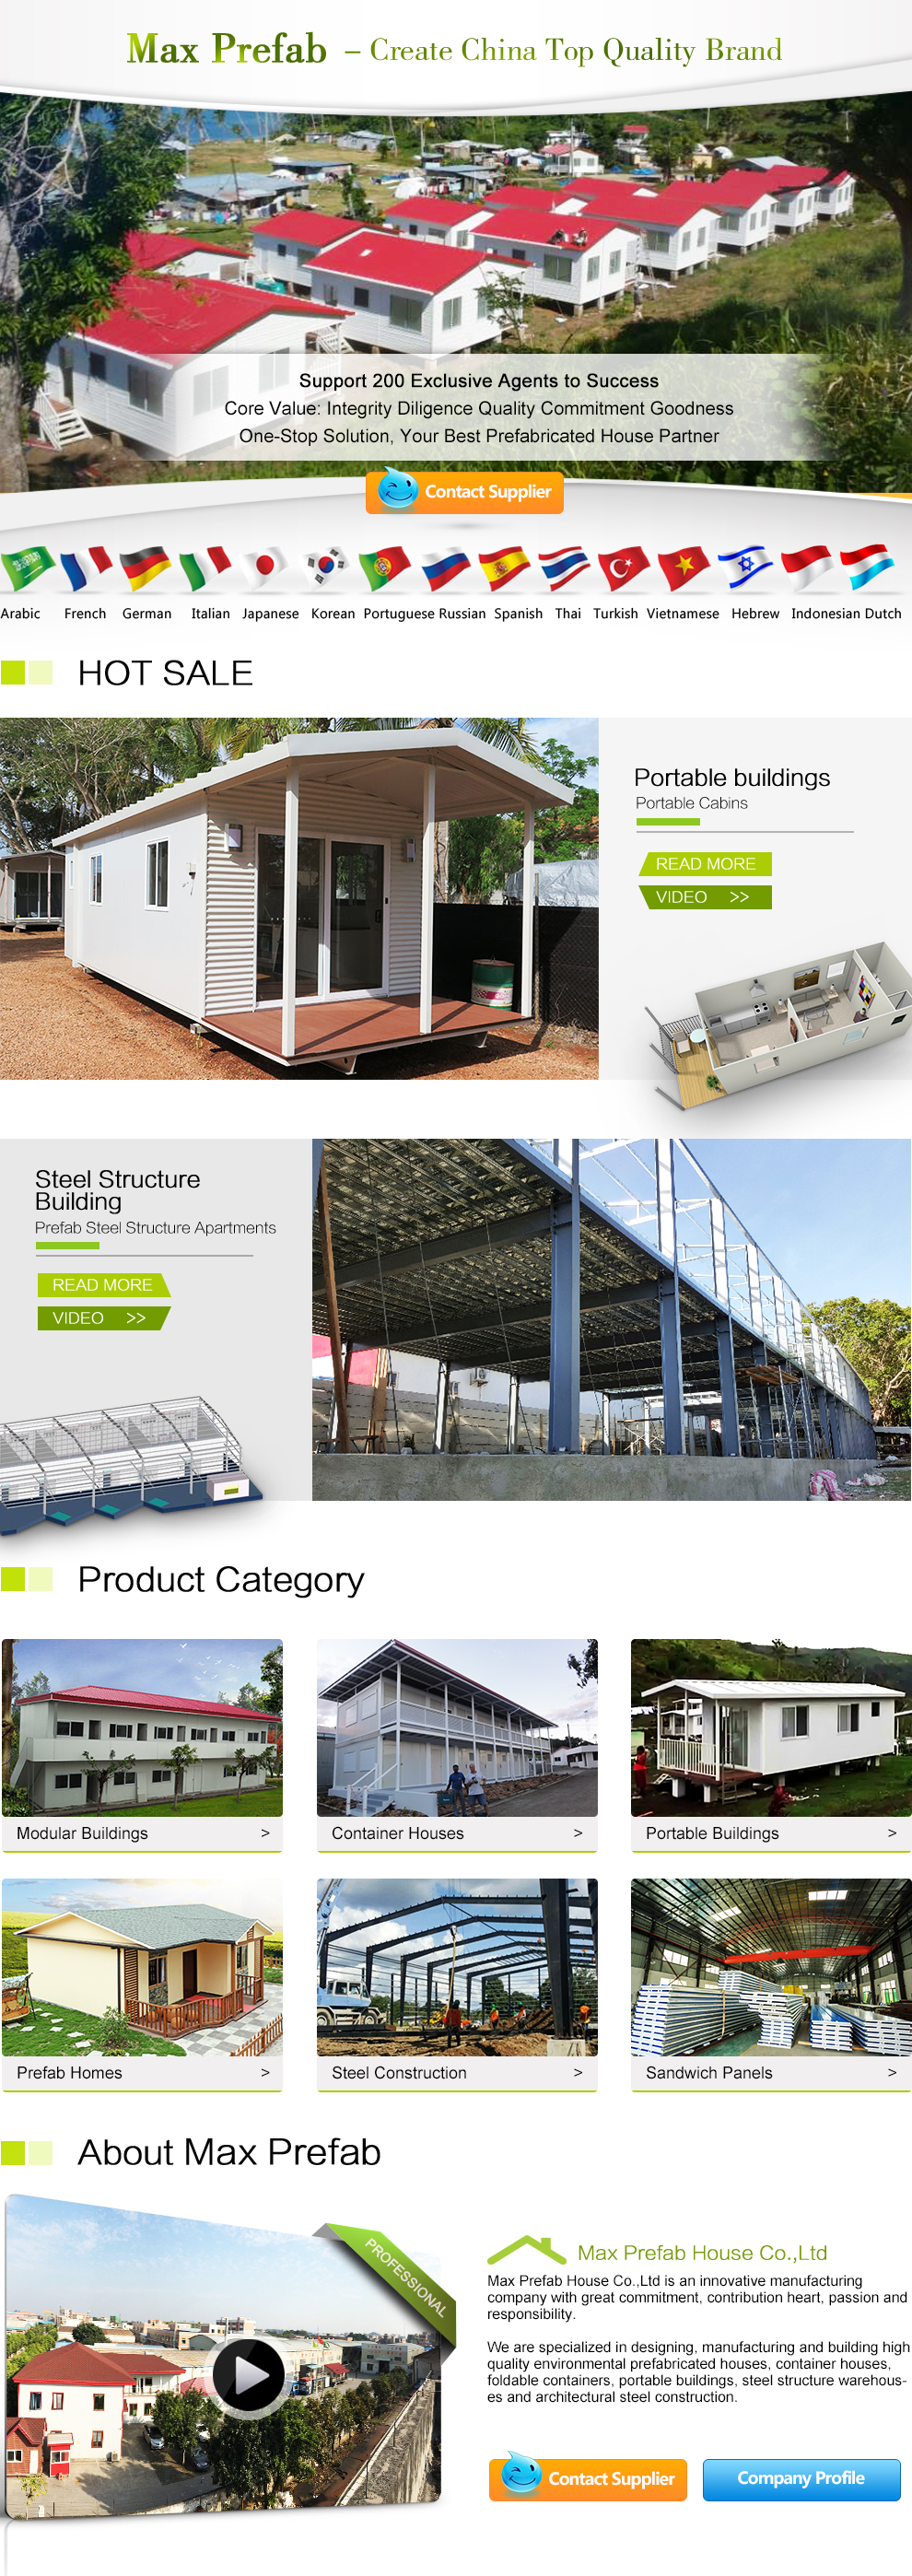 Container Haus Park Foshan Max Prefab House Co Ltd Prefabricated House Container